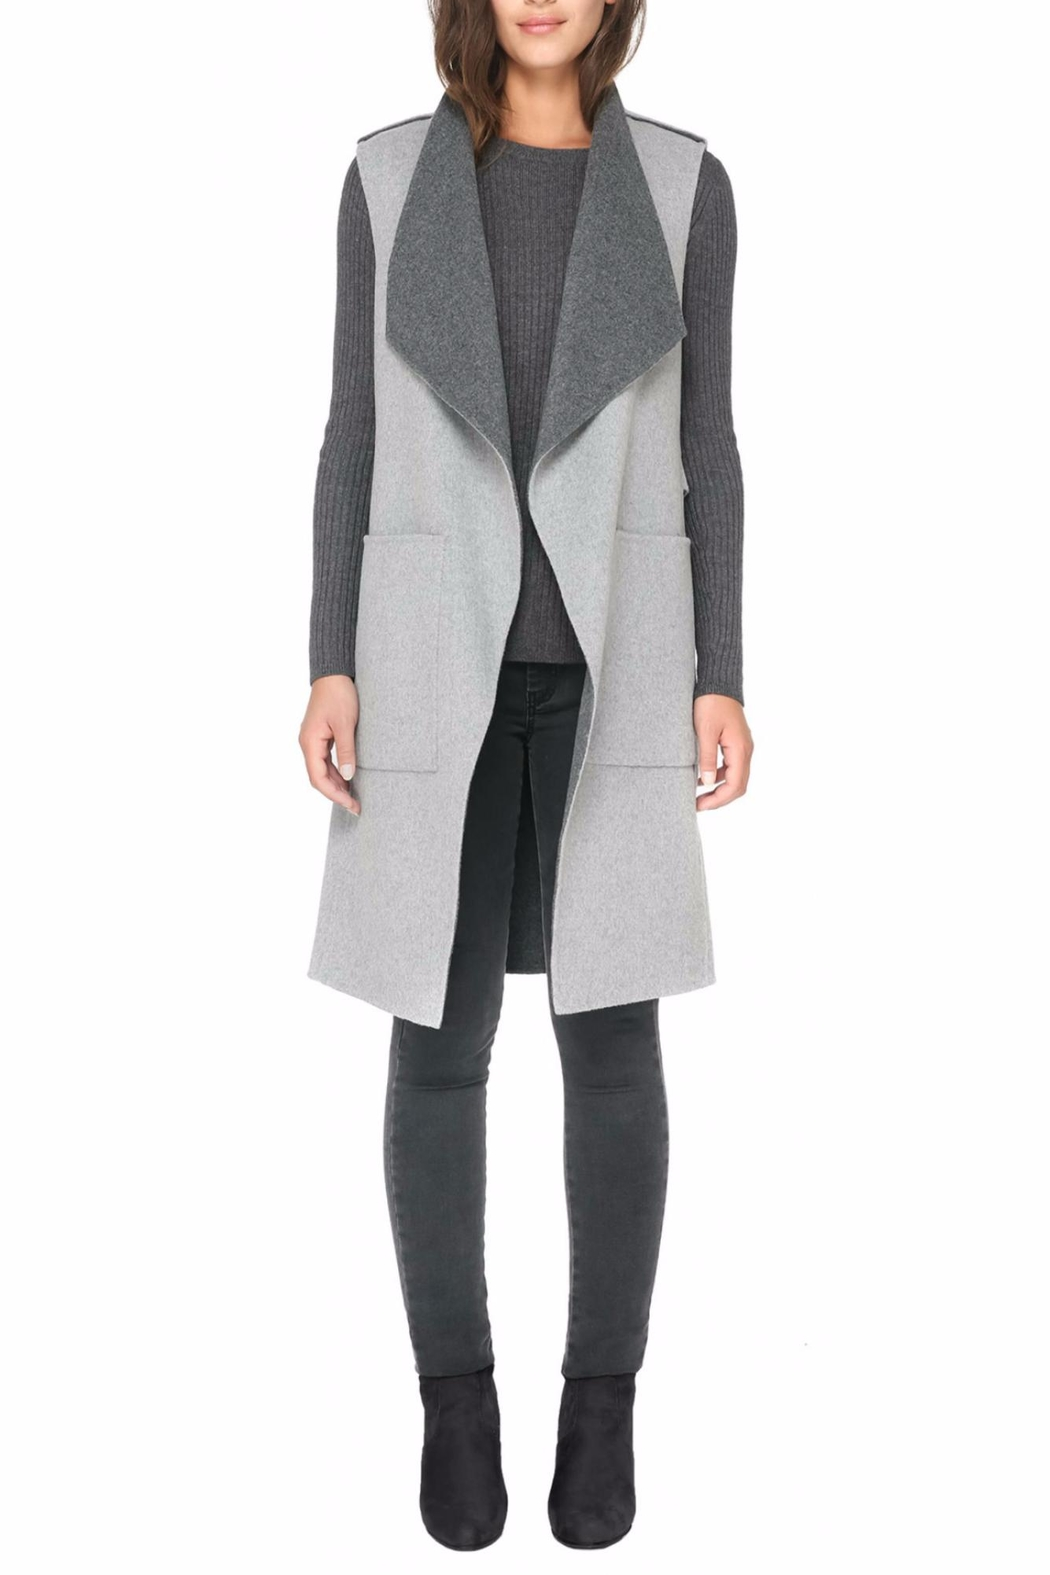 Soia & Kyo Linn Wool Vest - Front Cropped Image